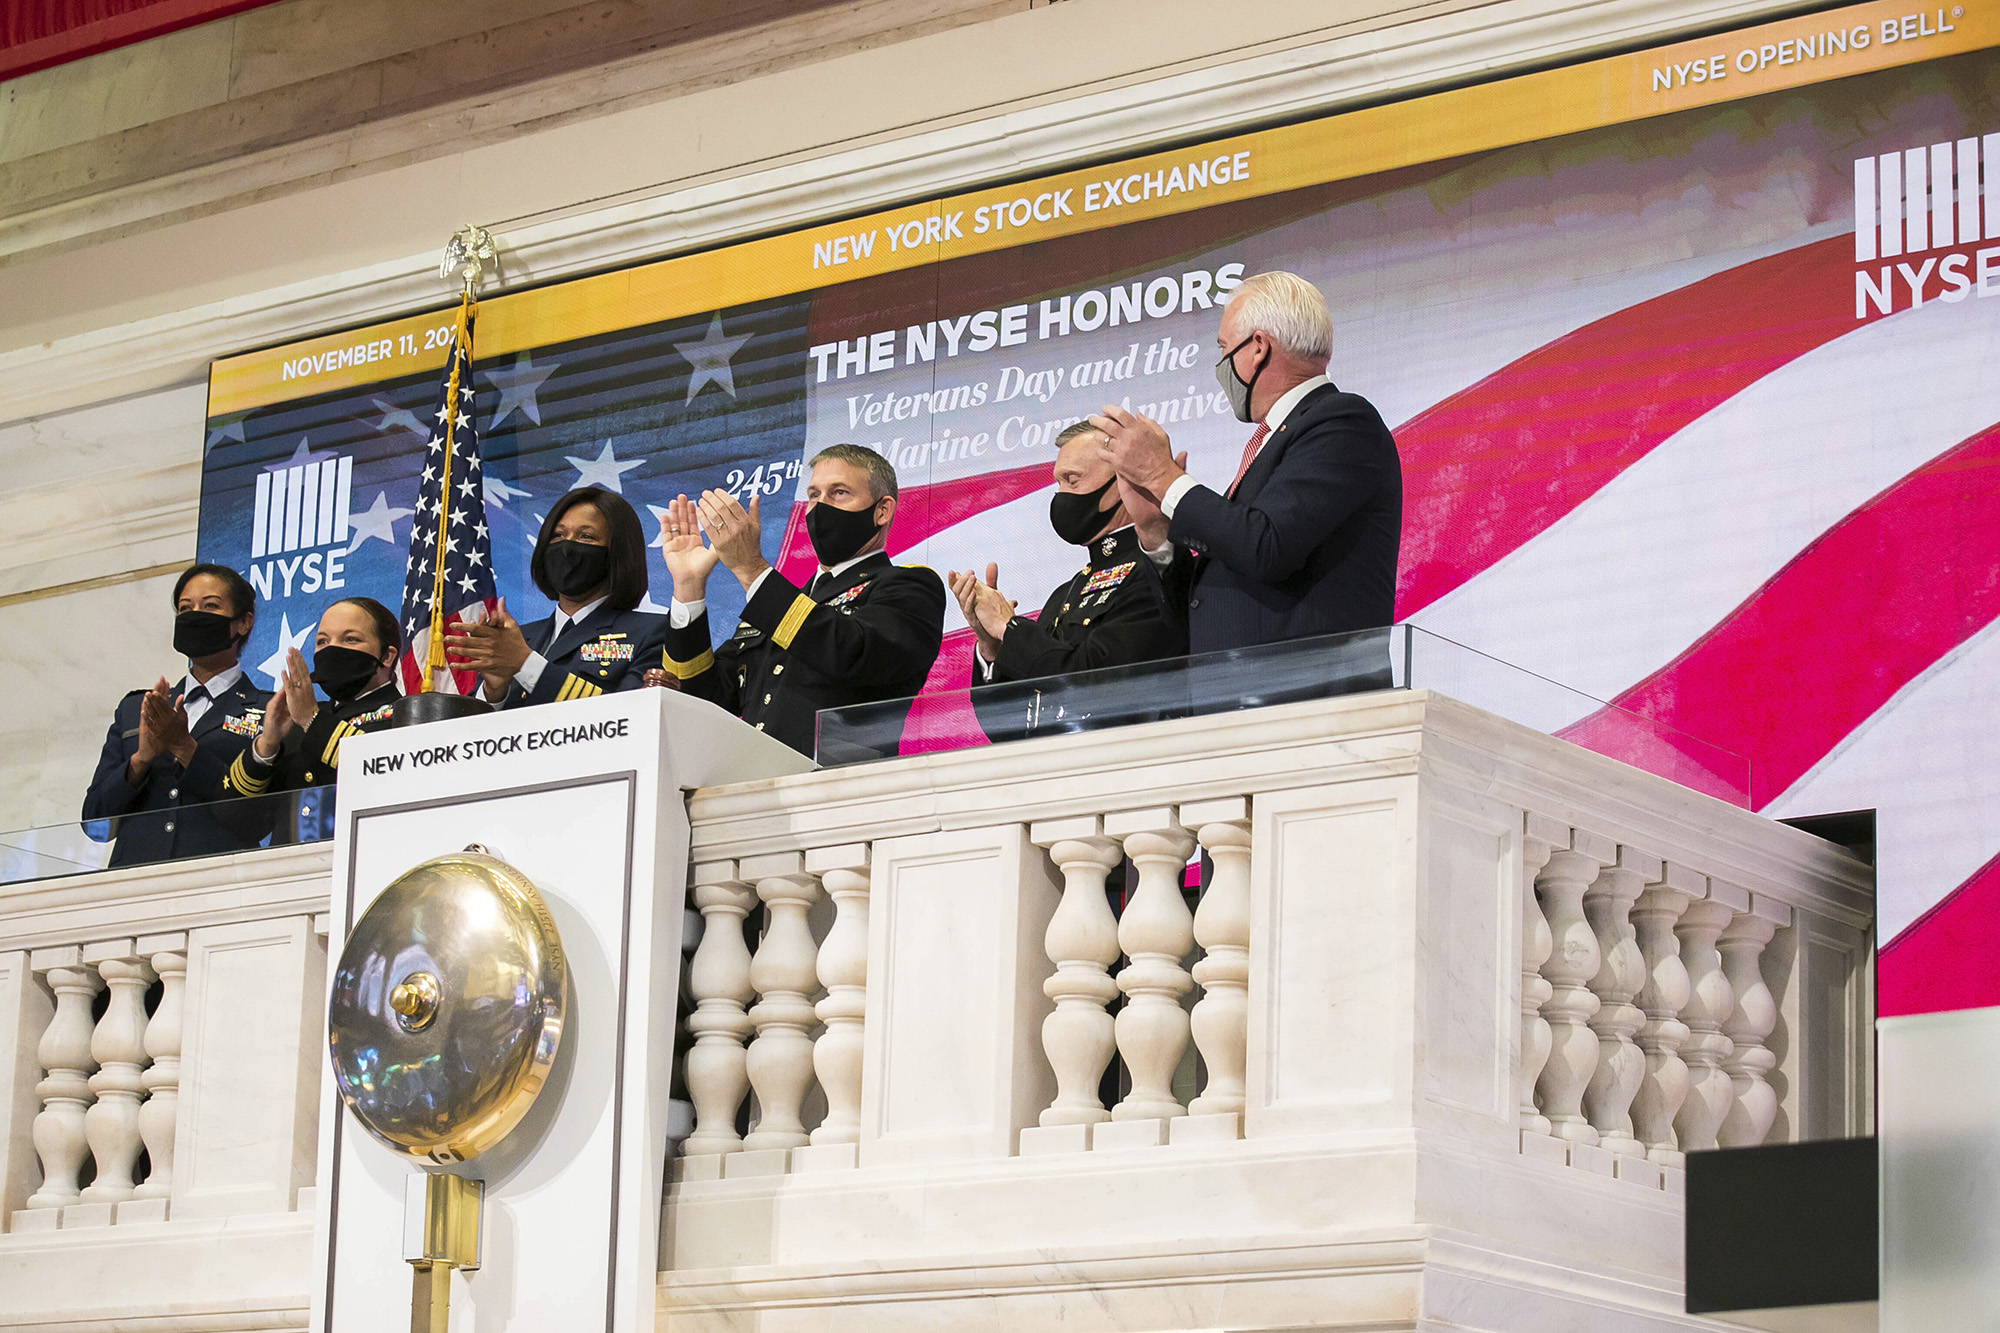 Members of the U.S. Coast Guard, Air Force, Navy and Army ring the opening bell at the New York Stock Exchange on Veterans Day, Wednesday, Nov. 11, 2020, in New York. (Courtney Crow/New York Stock Exchange via AP)